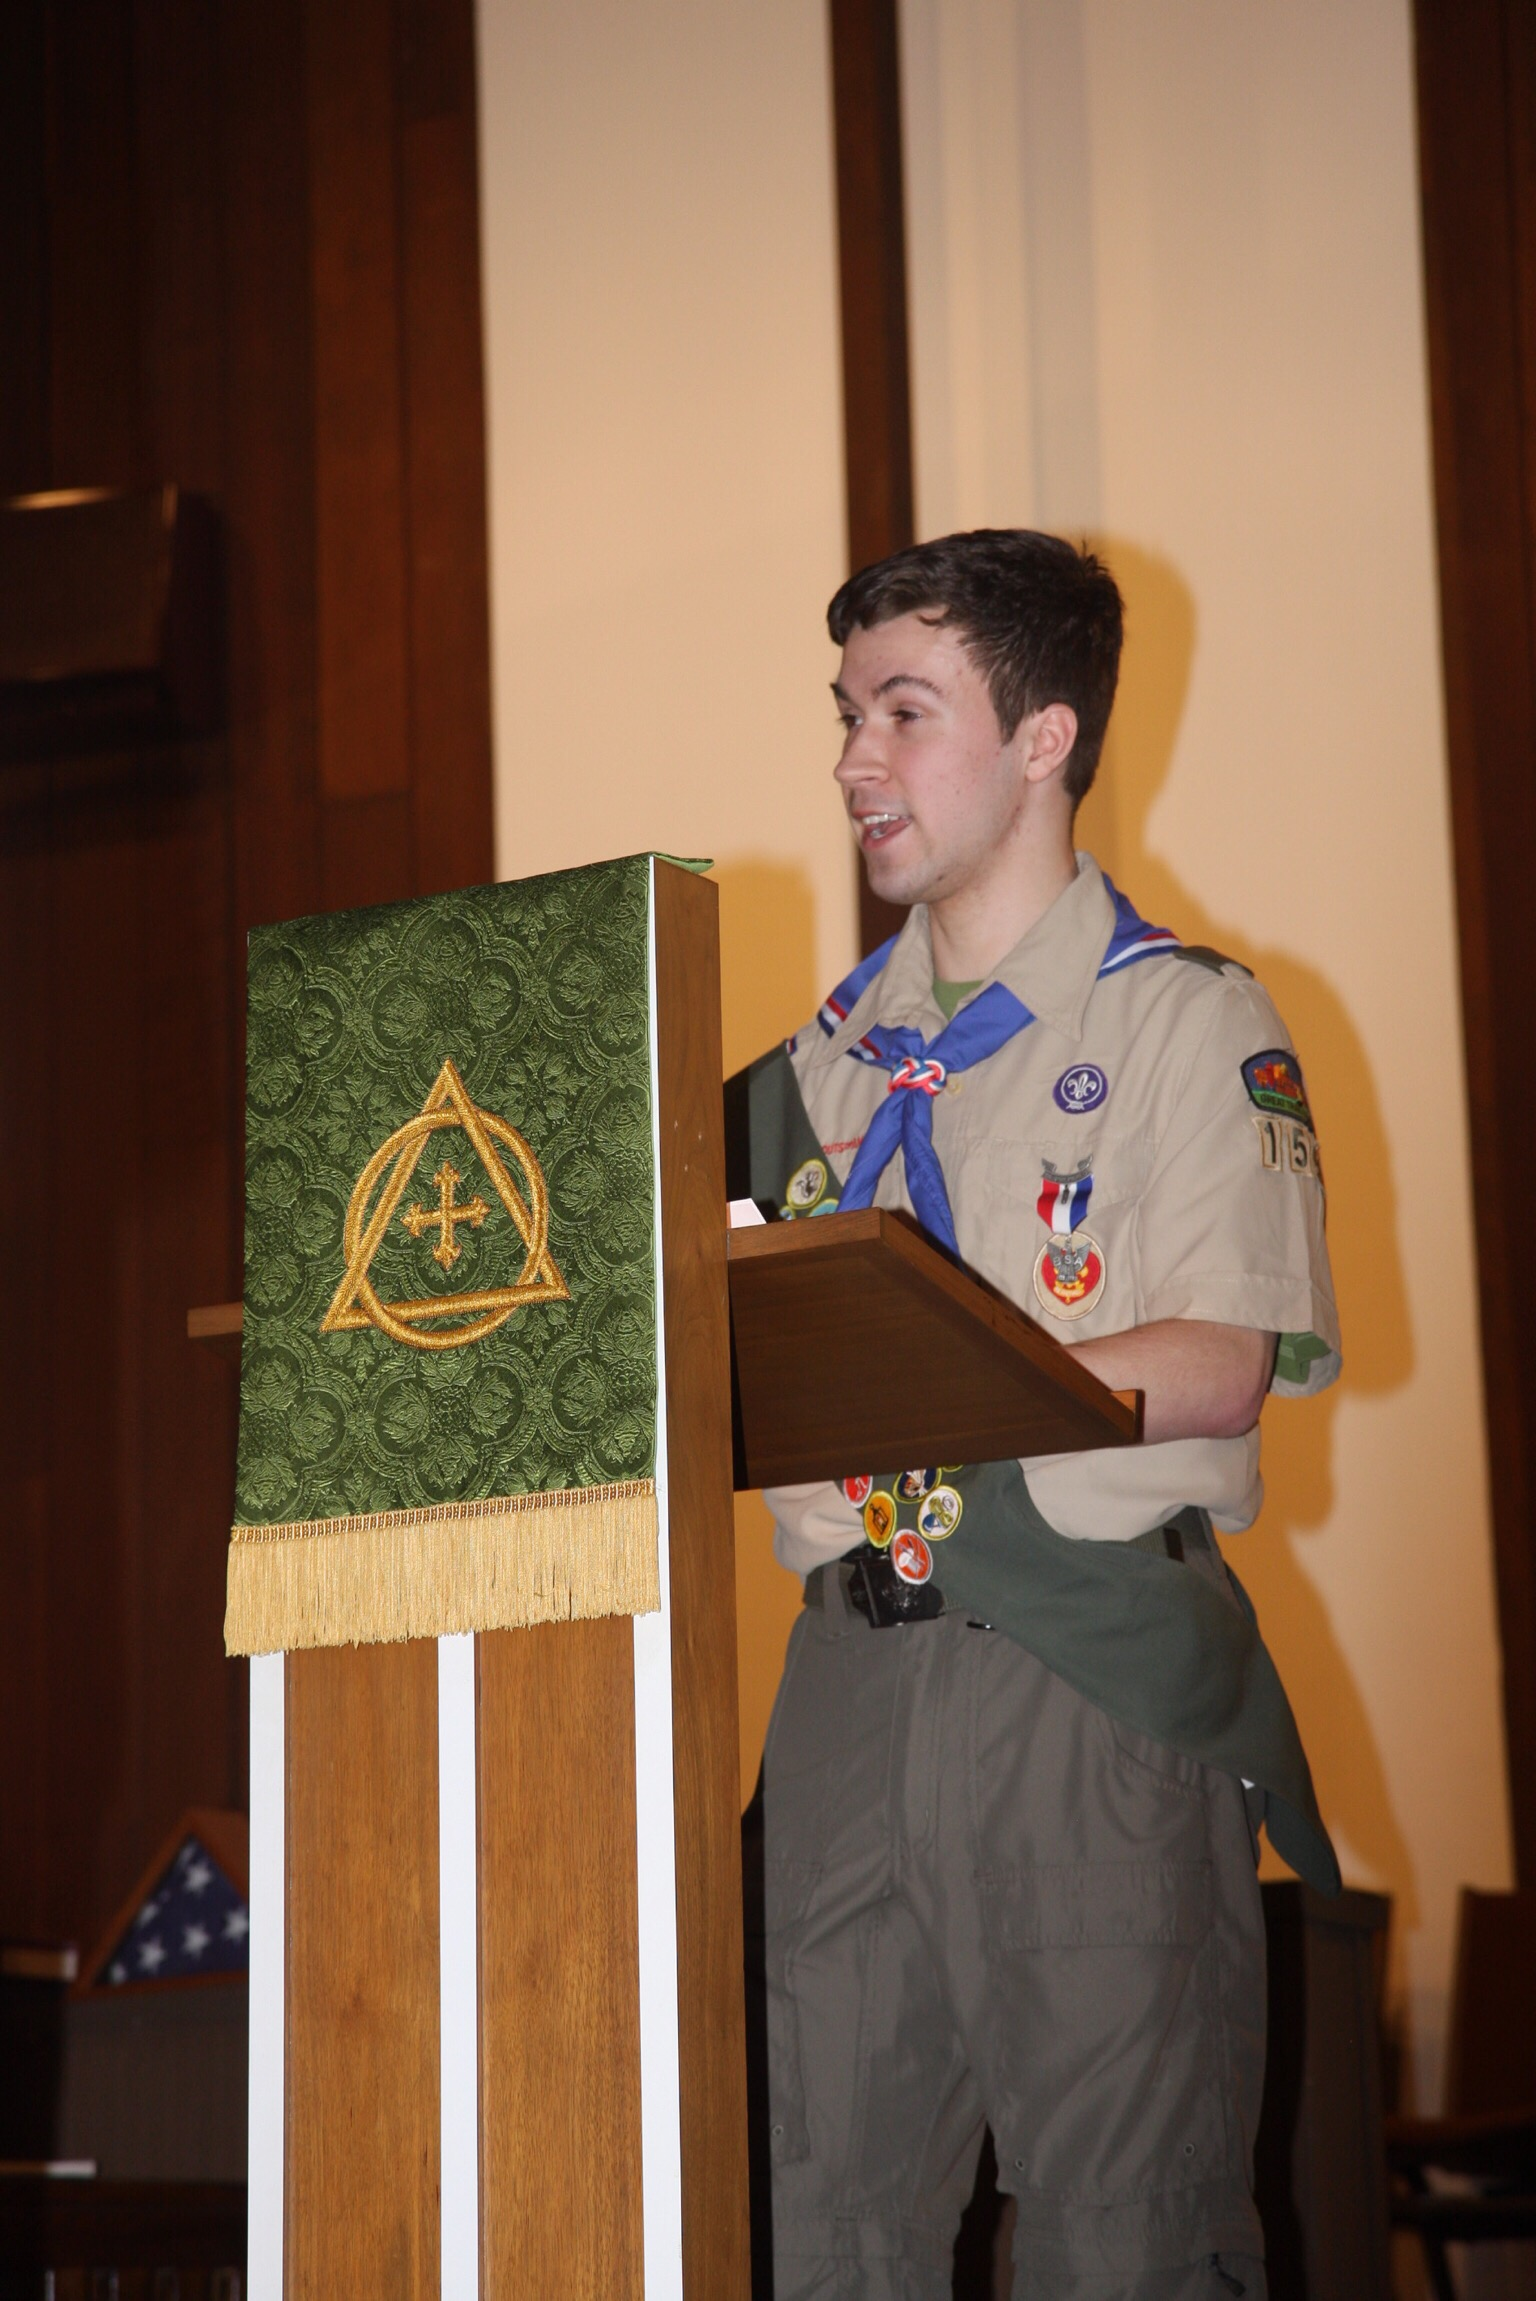 Max Lyman S Eagle Court Of Honor Troop 155